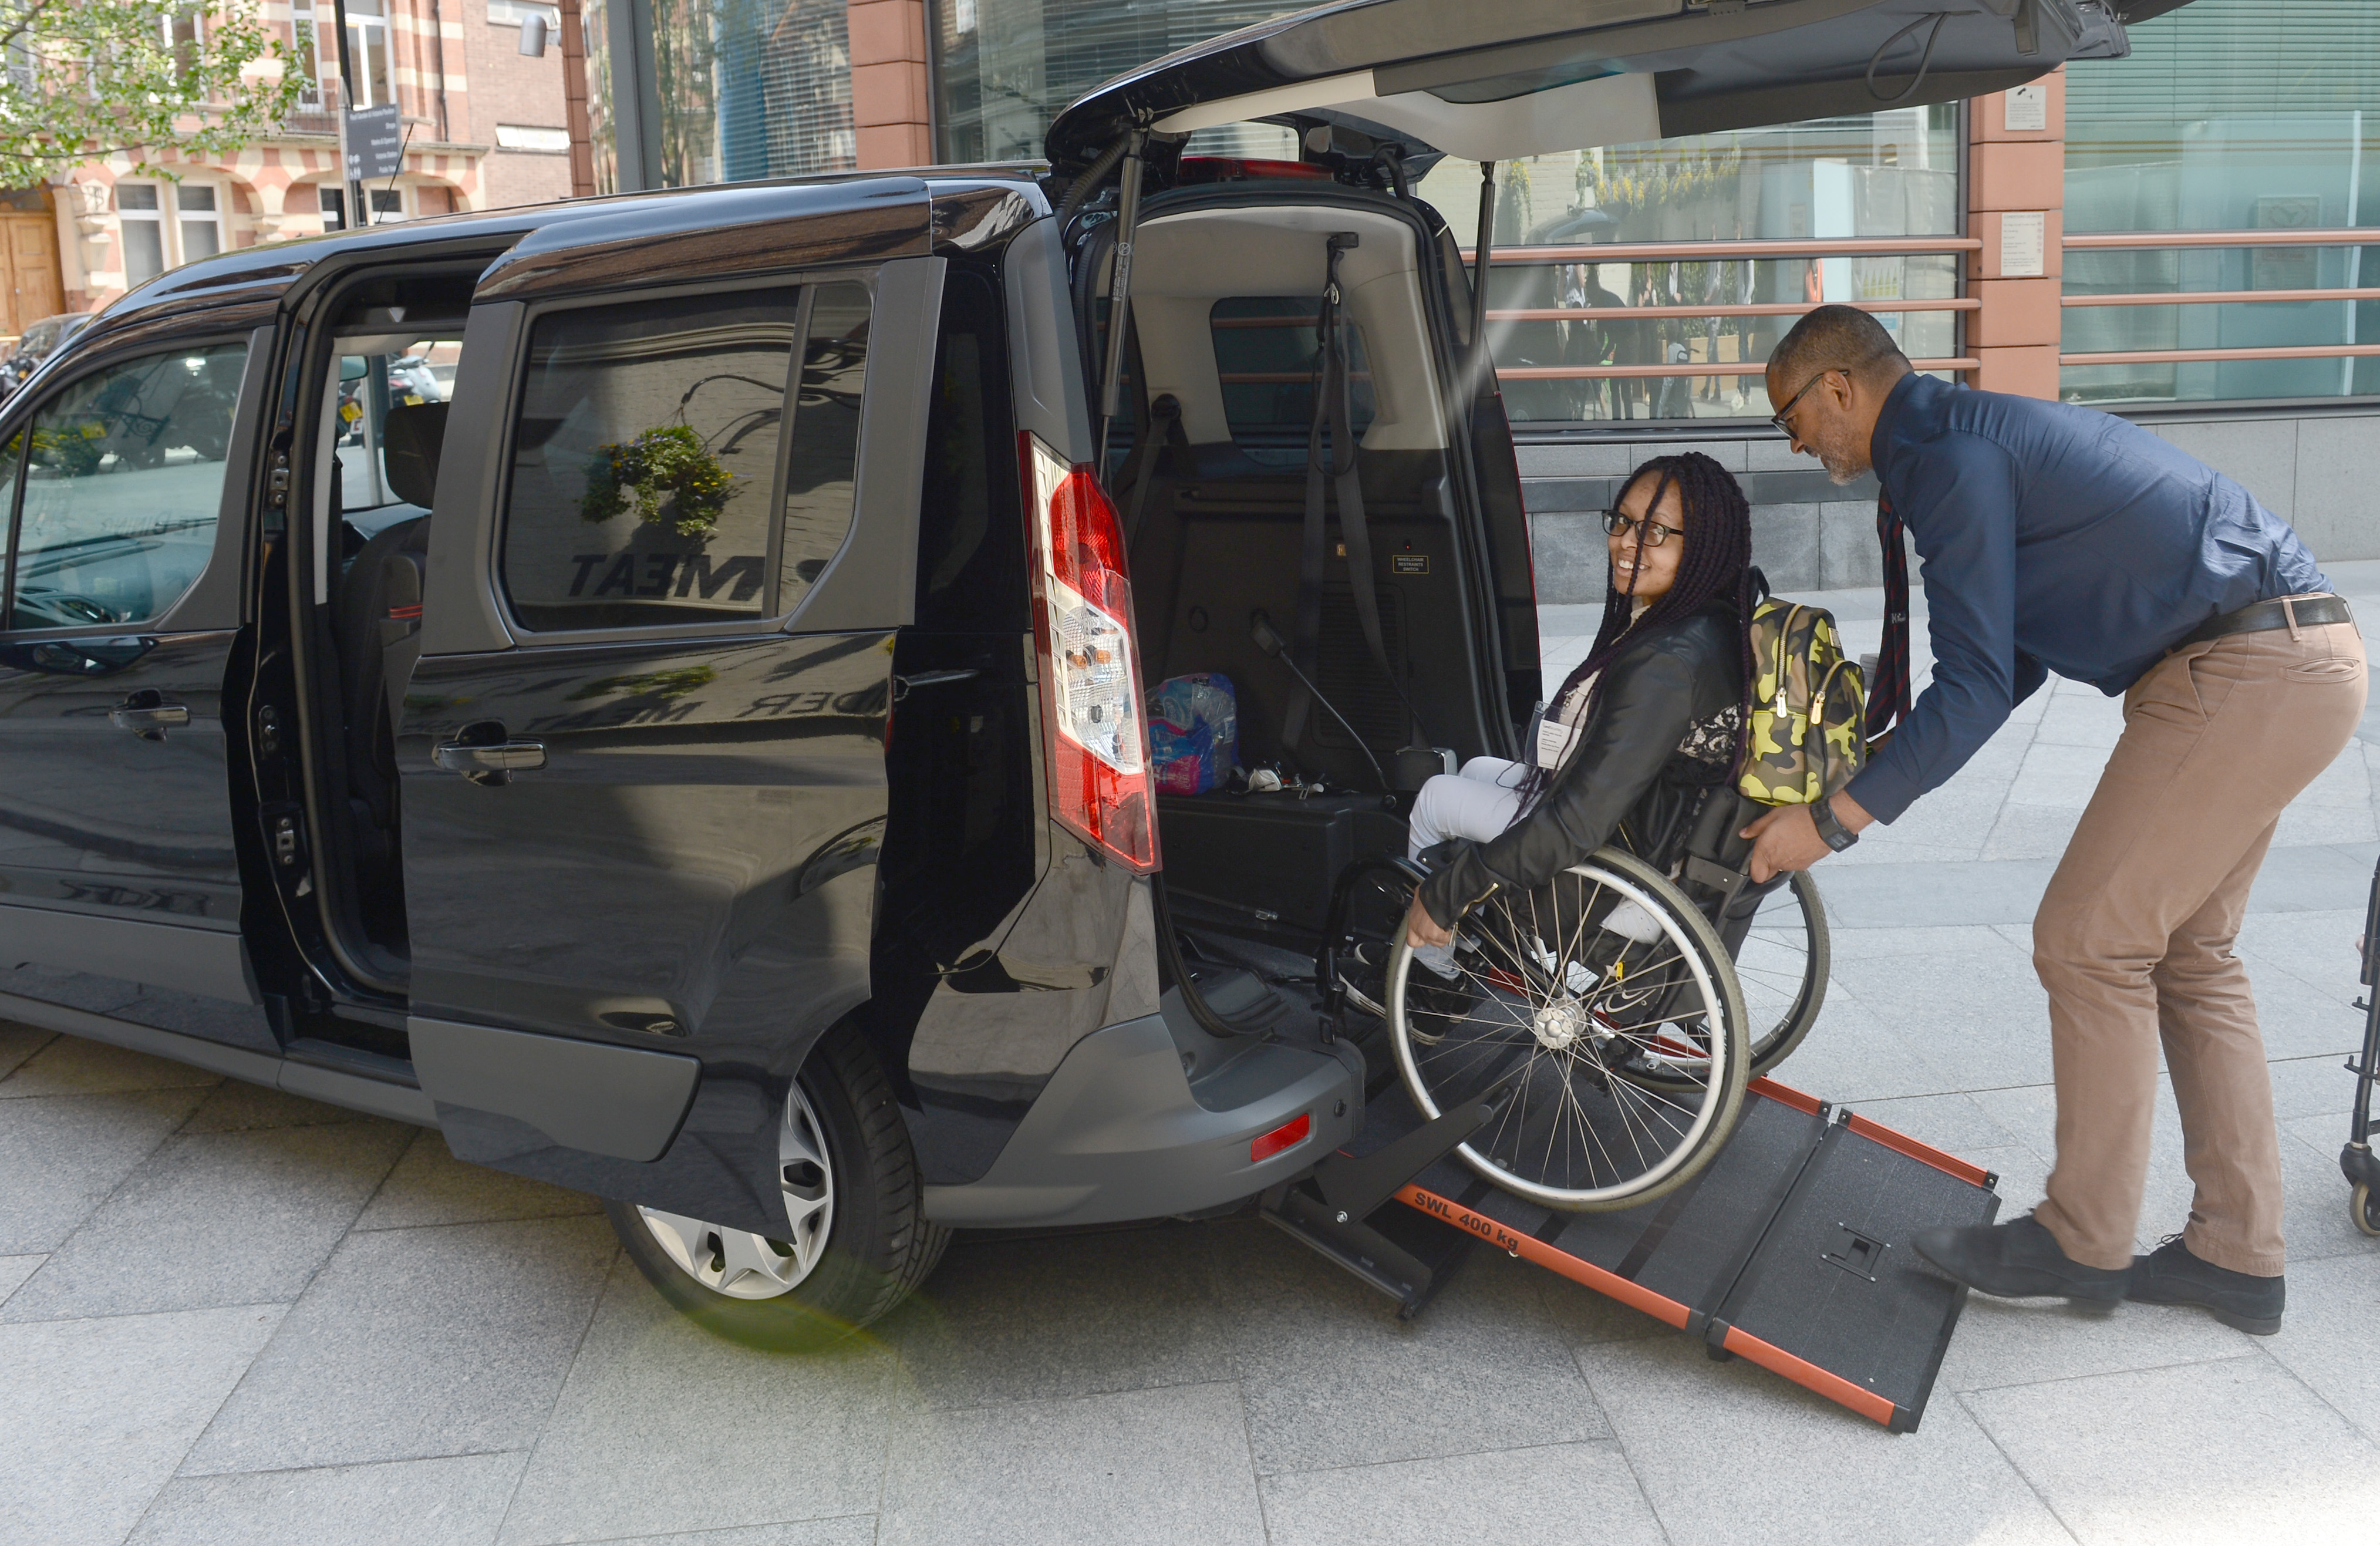 wheelchair uber bliss zero gravity chair cabs able to carry passengers in london